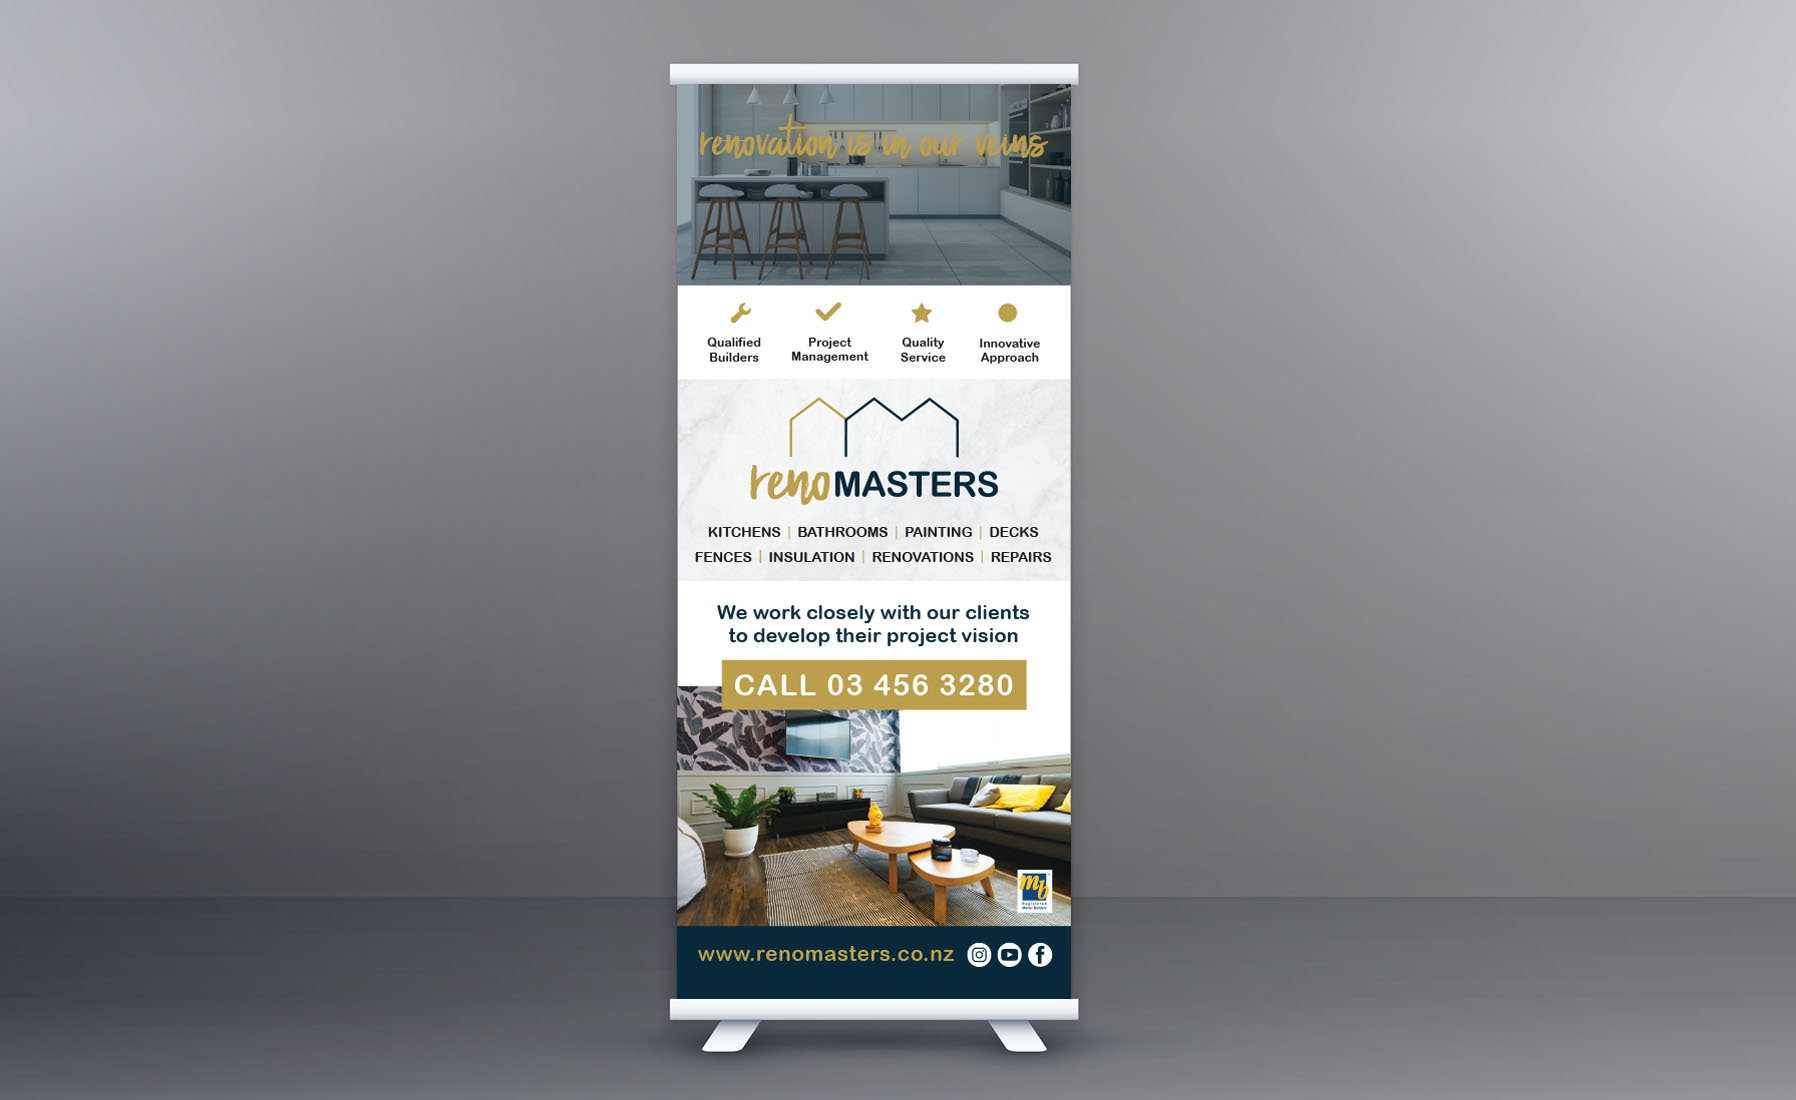 RenoMasters Pull up banner design Cre8ive Dunedin Signage